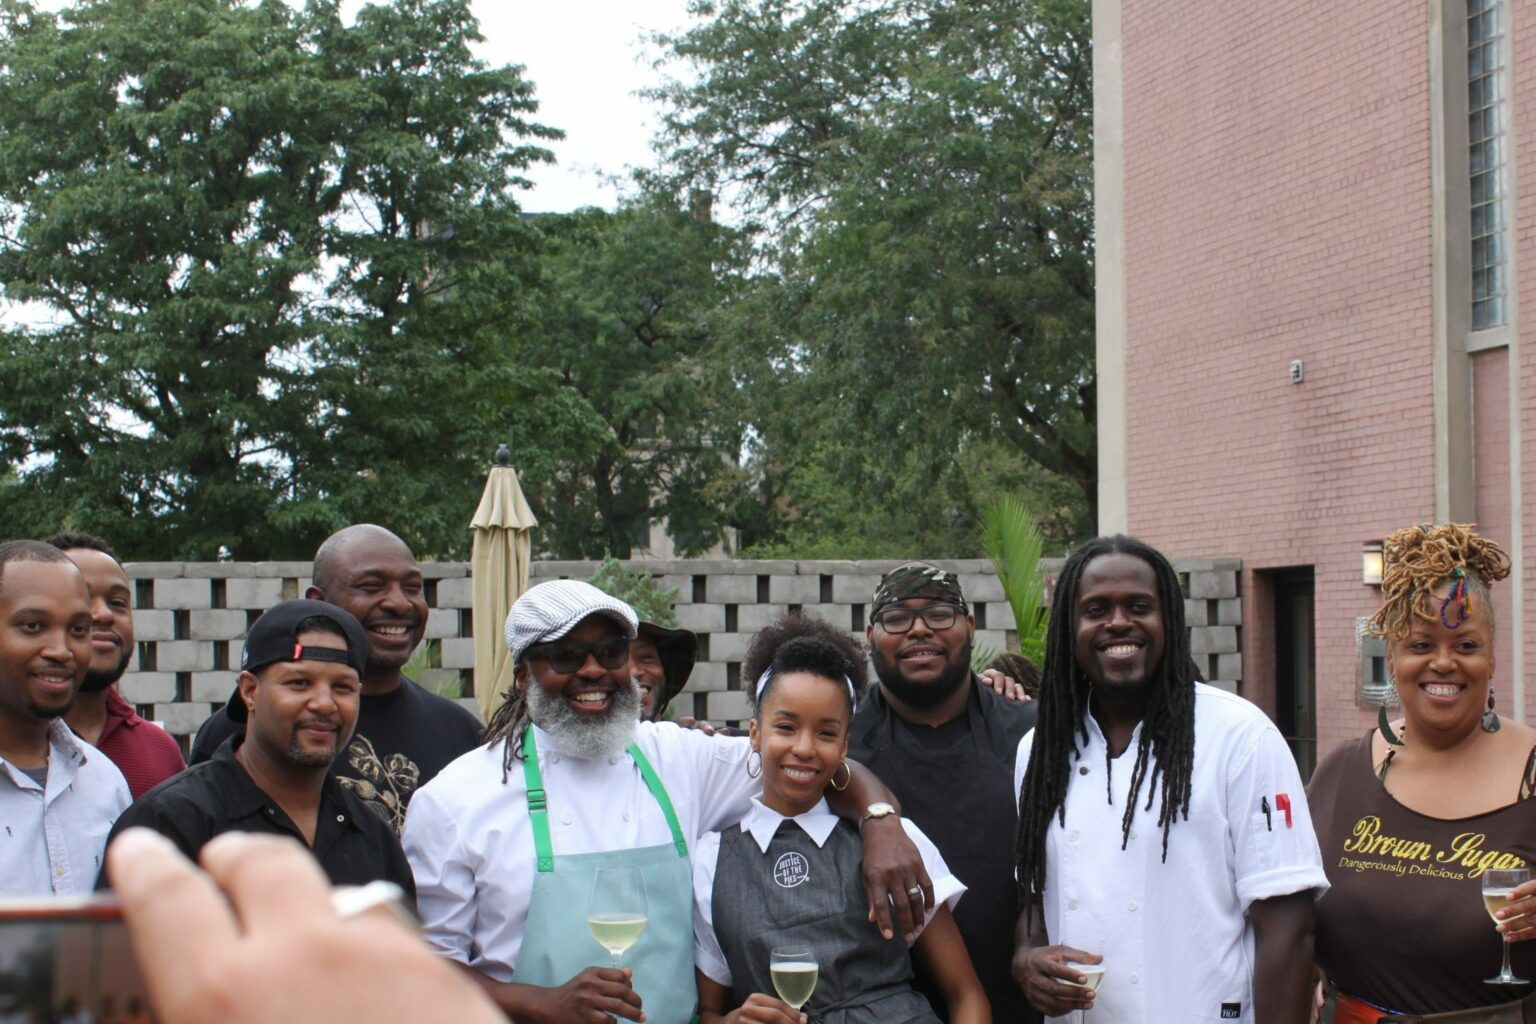 South Side Chef Revival and Homecoming Celebrates Edna Lewis at Chicago's Parkway Ballroom